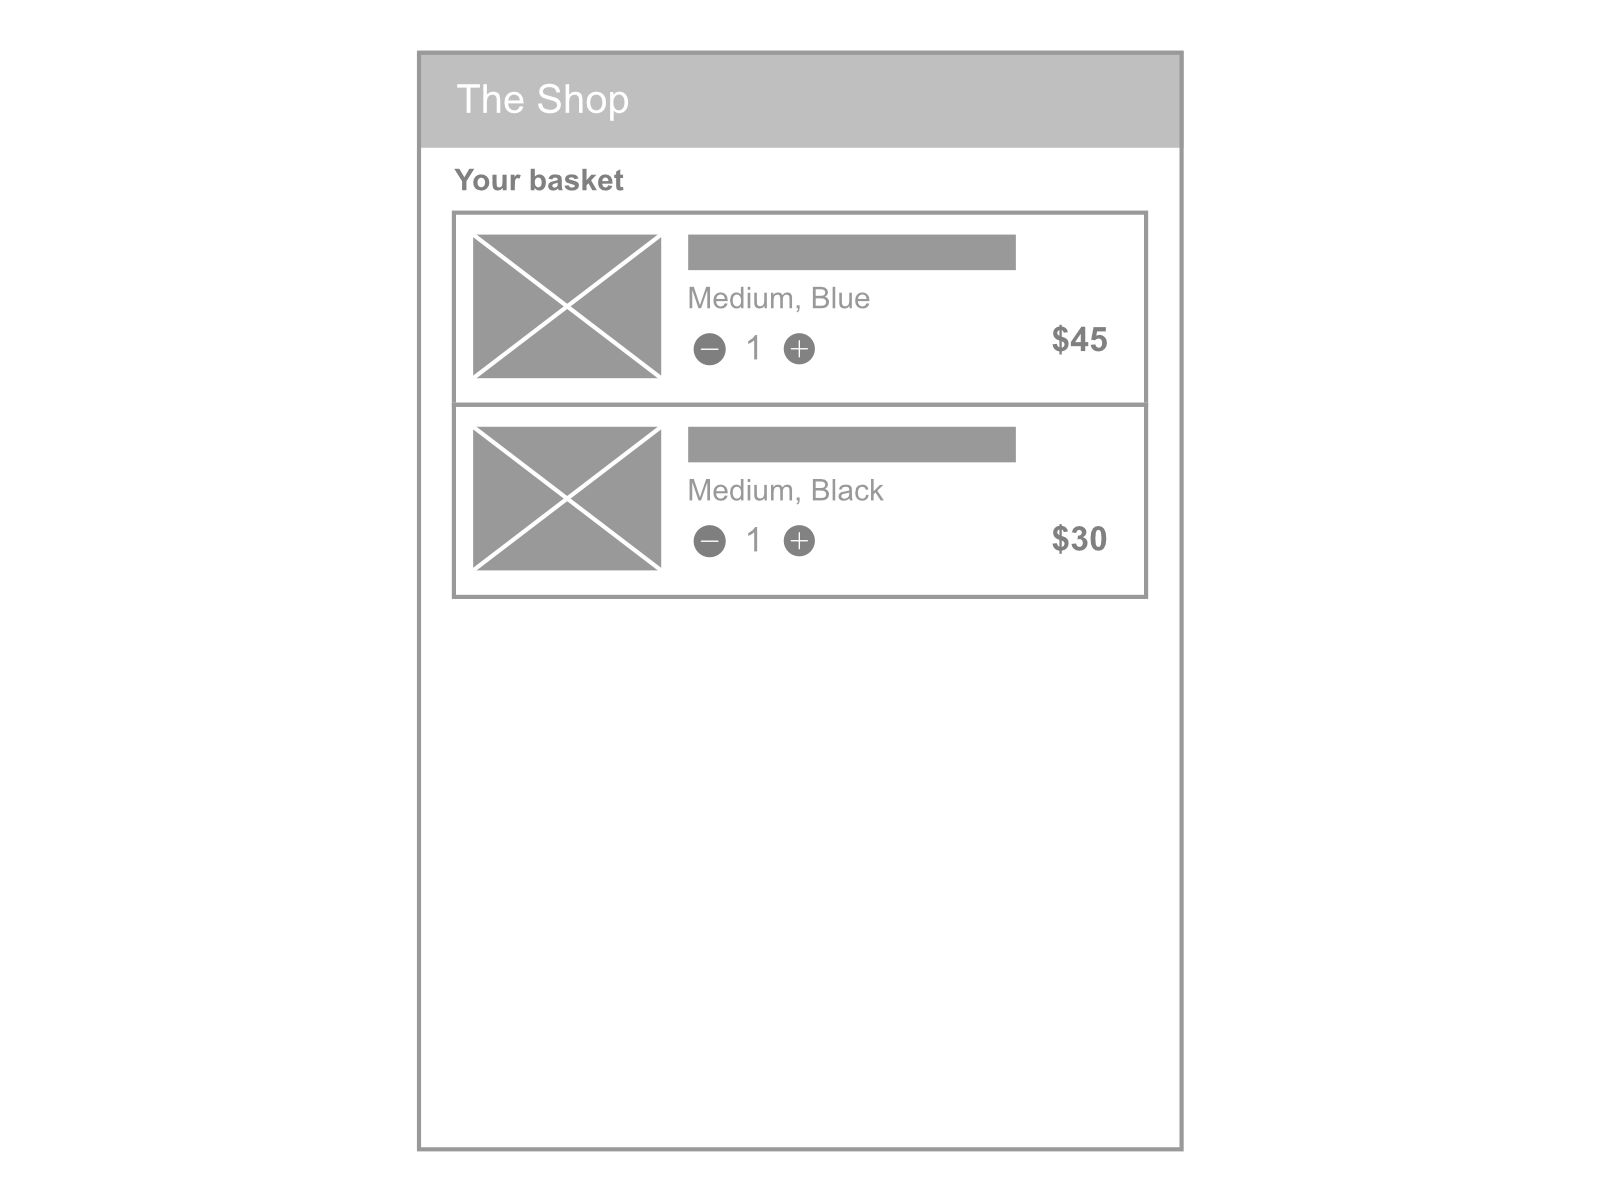 Shopping basket UX quantity